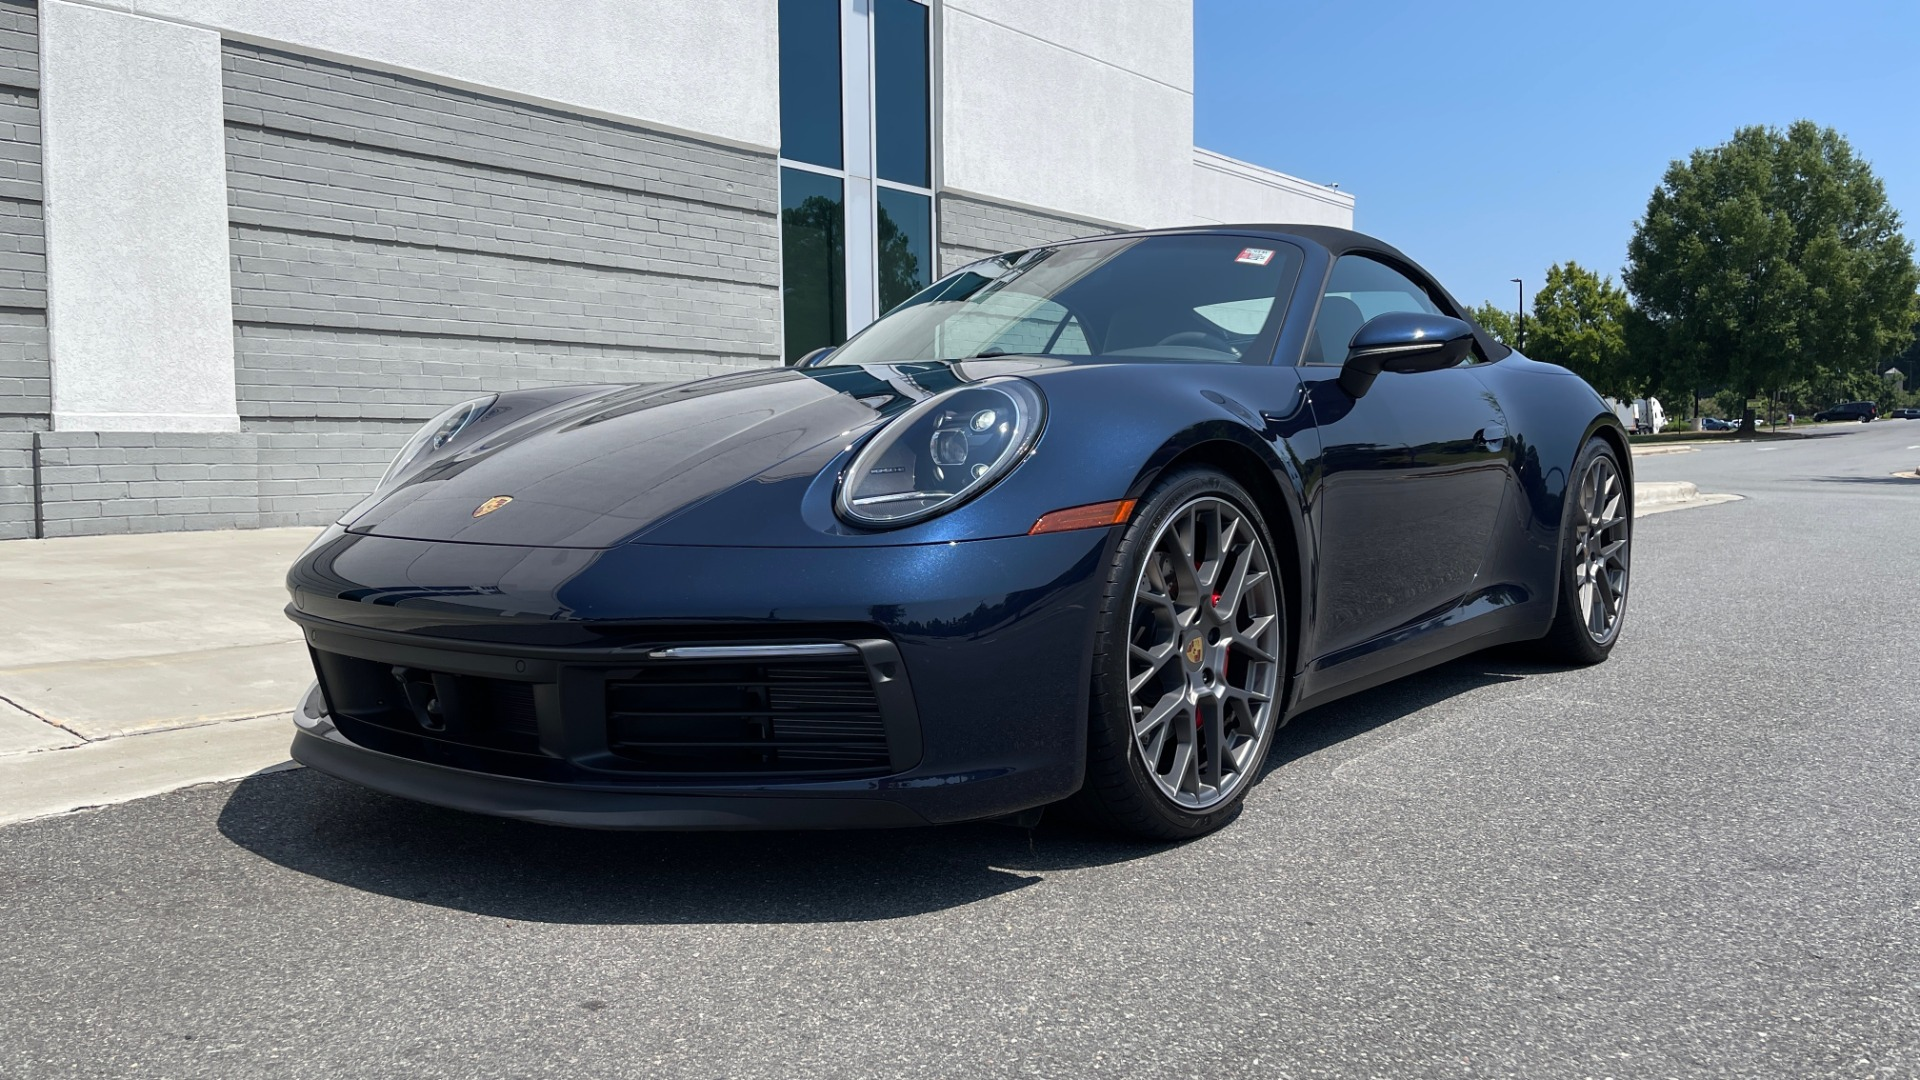 Used 2020 Porsche 911 CARRERA S CABRIOLET PREMIUM SPORT / LCA / ACC / BOSE / REARVIEW for sale $159,995 at Formula Imports in Charlotte NC 28227 5